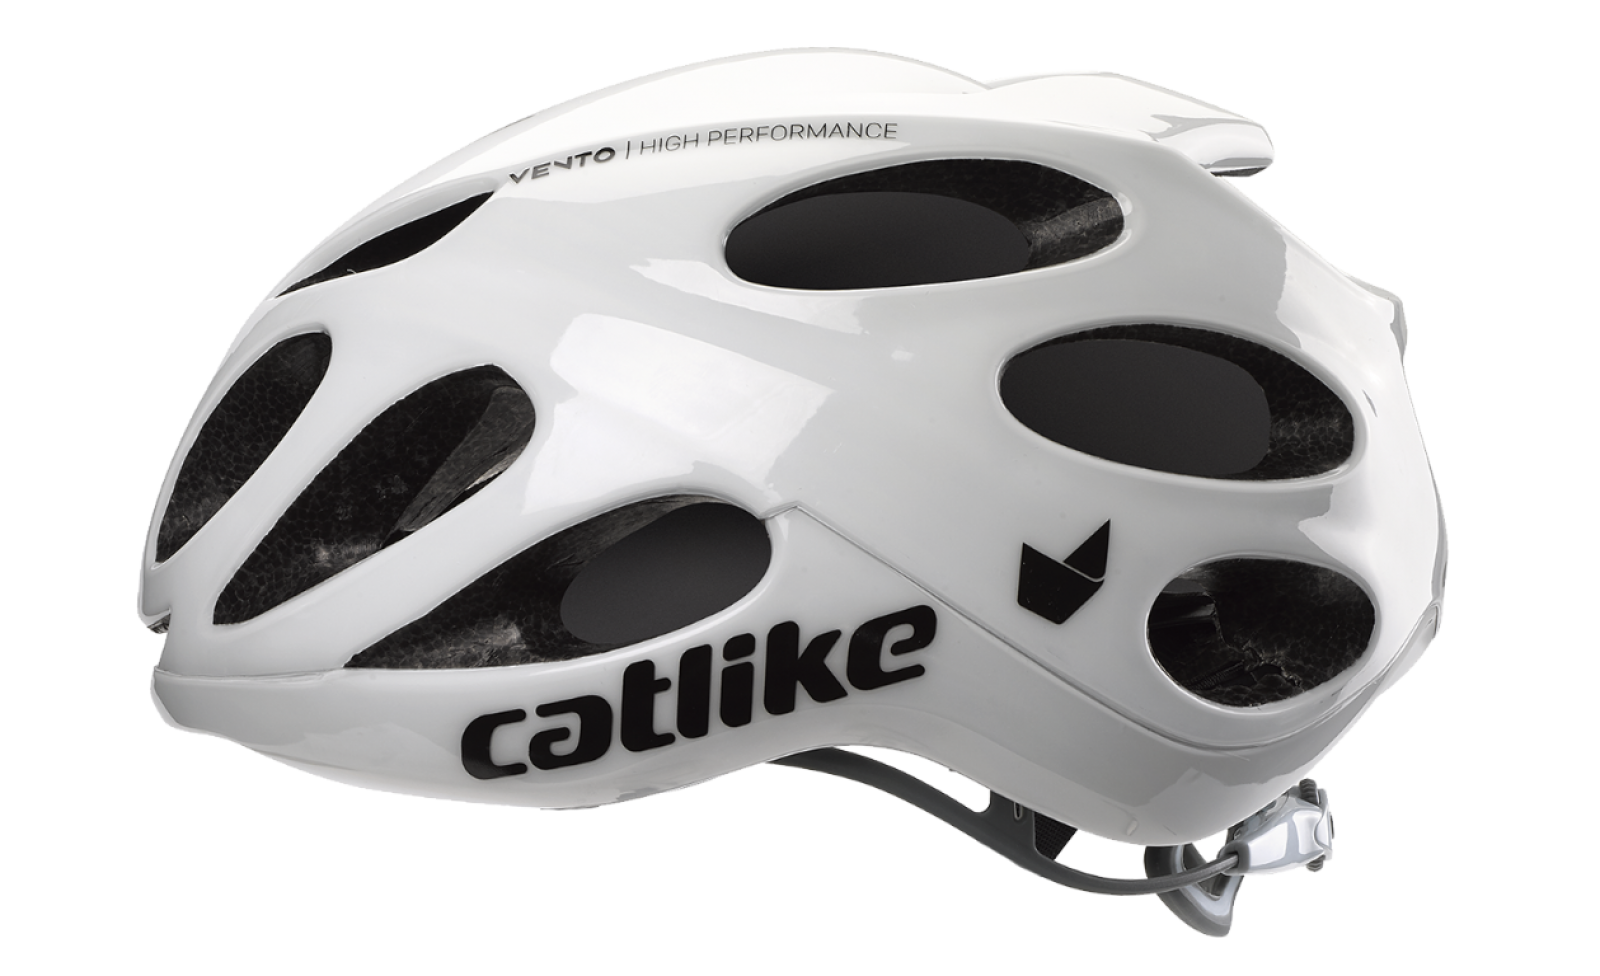 Casque-vento-white